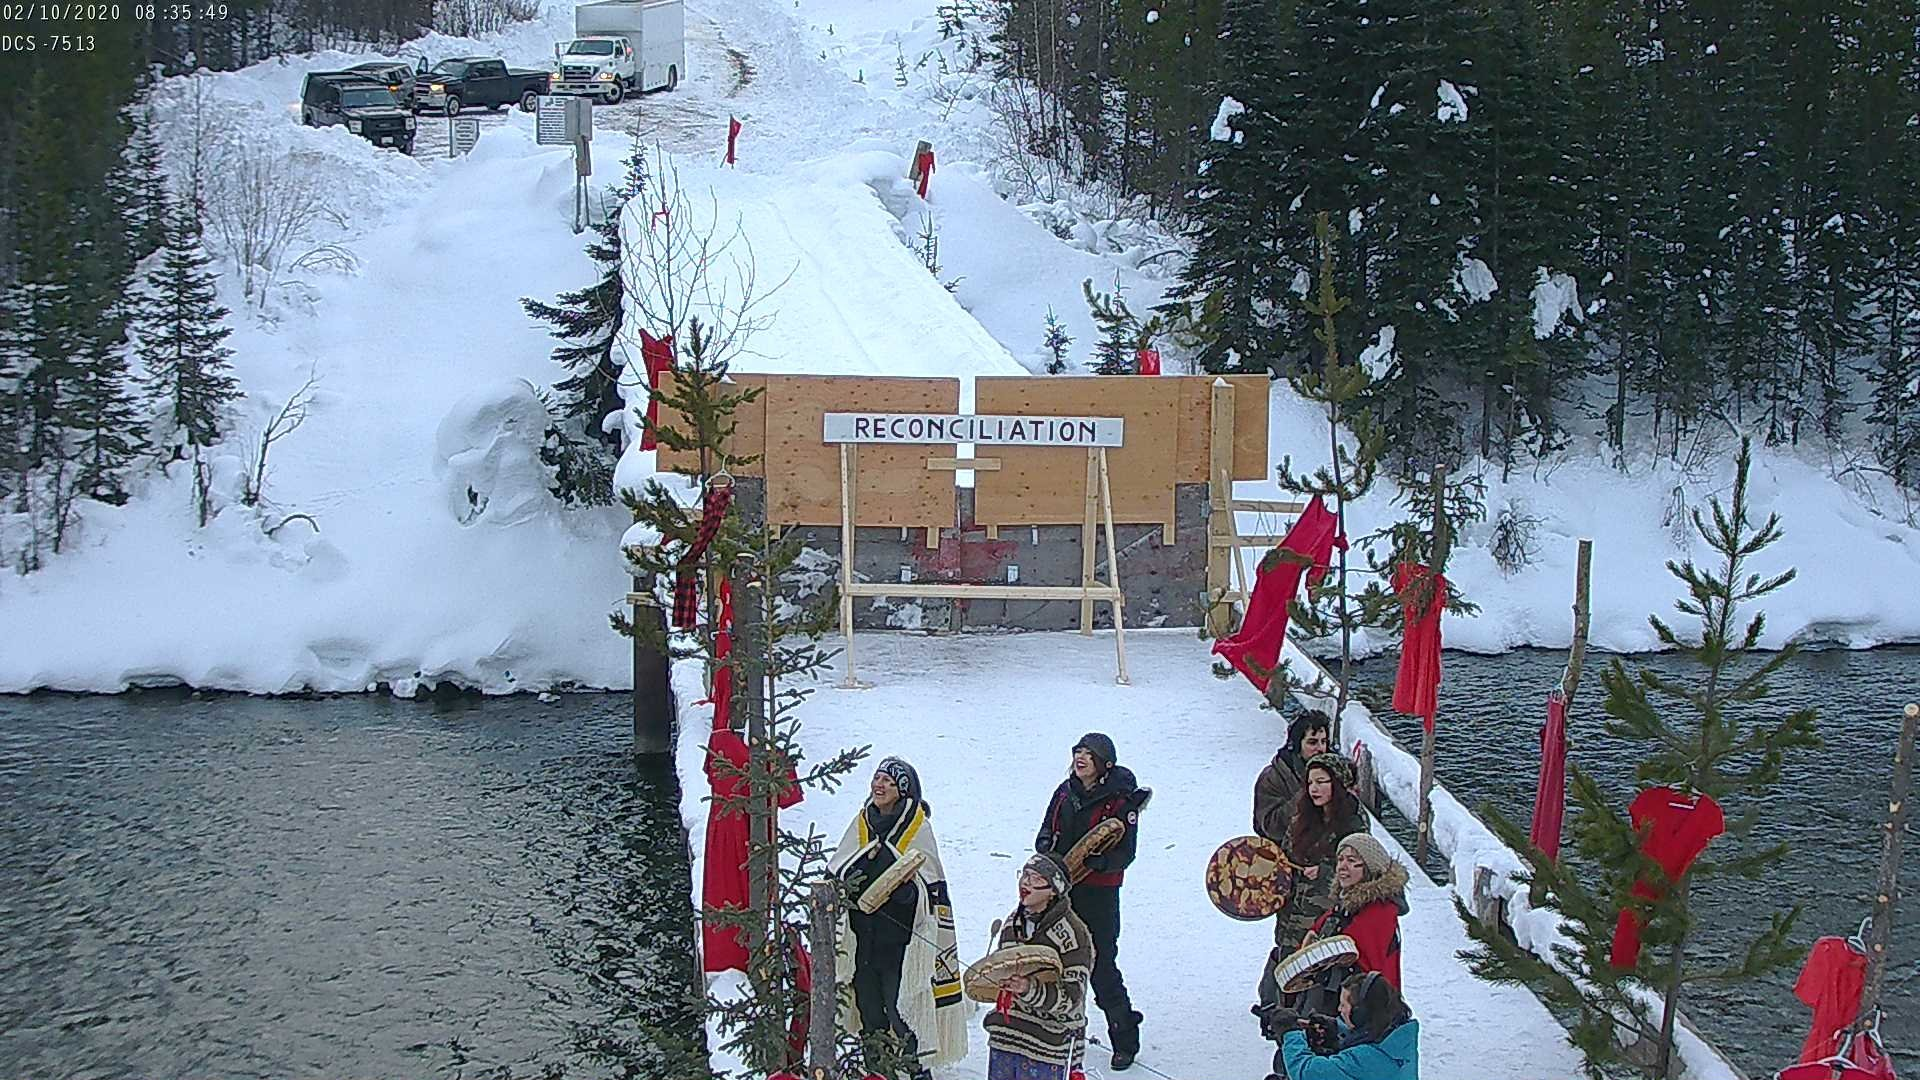 Image via Unist'ot'en Camp: RCMP are climbing the snow towards gate entrance, telling all present they will be arrested and face civil or criminal contempt. Matriarchs are calling the ancestors. February 2020